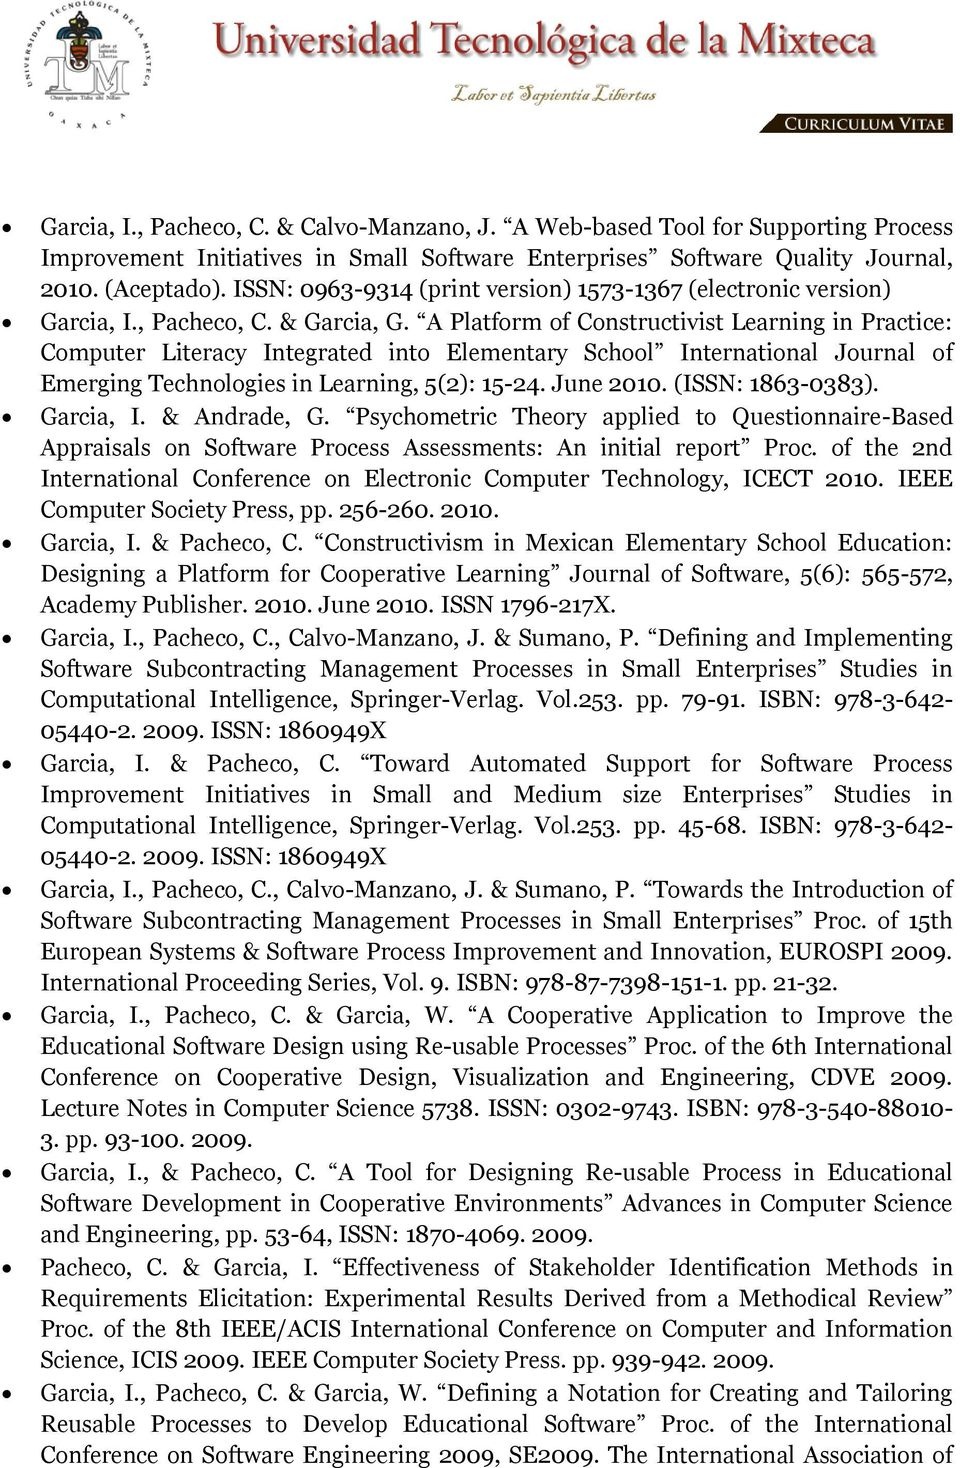 A Platform of Constructivist Learning in Practice: Computer Literacy Integrated into Elementary School International Journal of Emerging Technologies in Learning, 5(2): 15-24. June 2010.